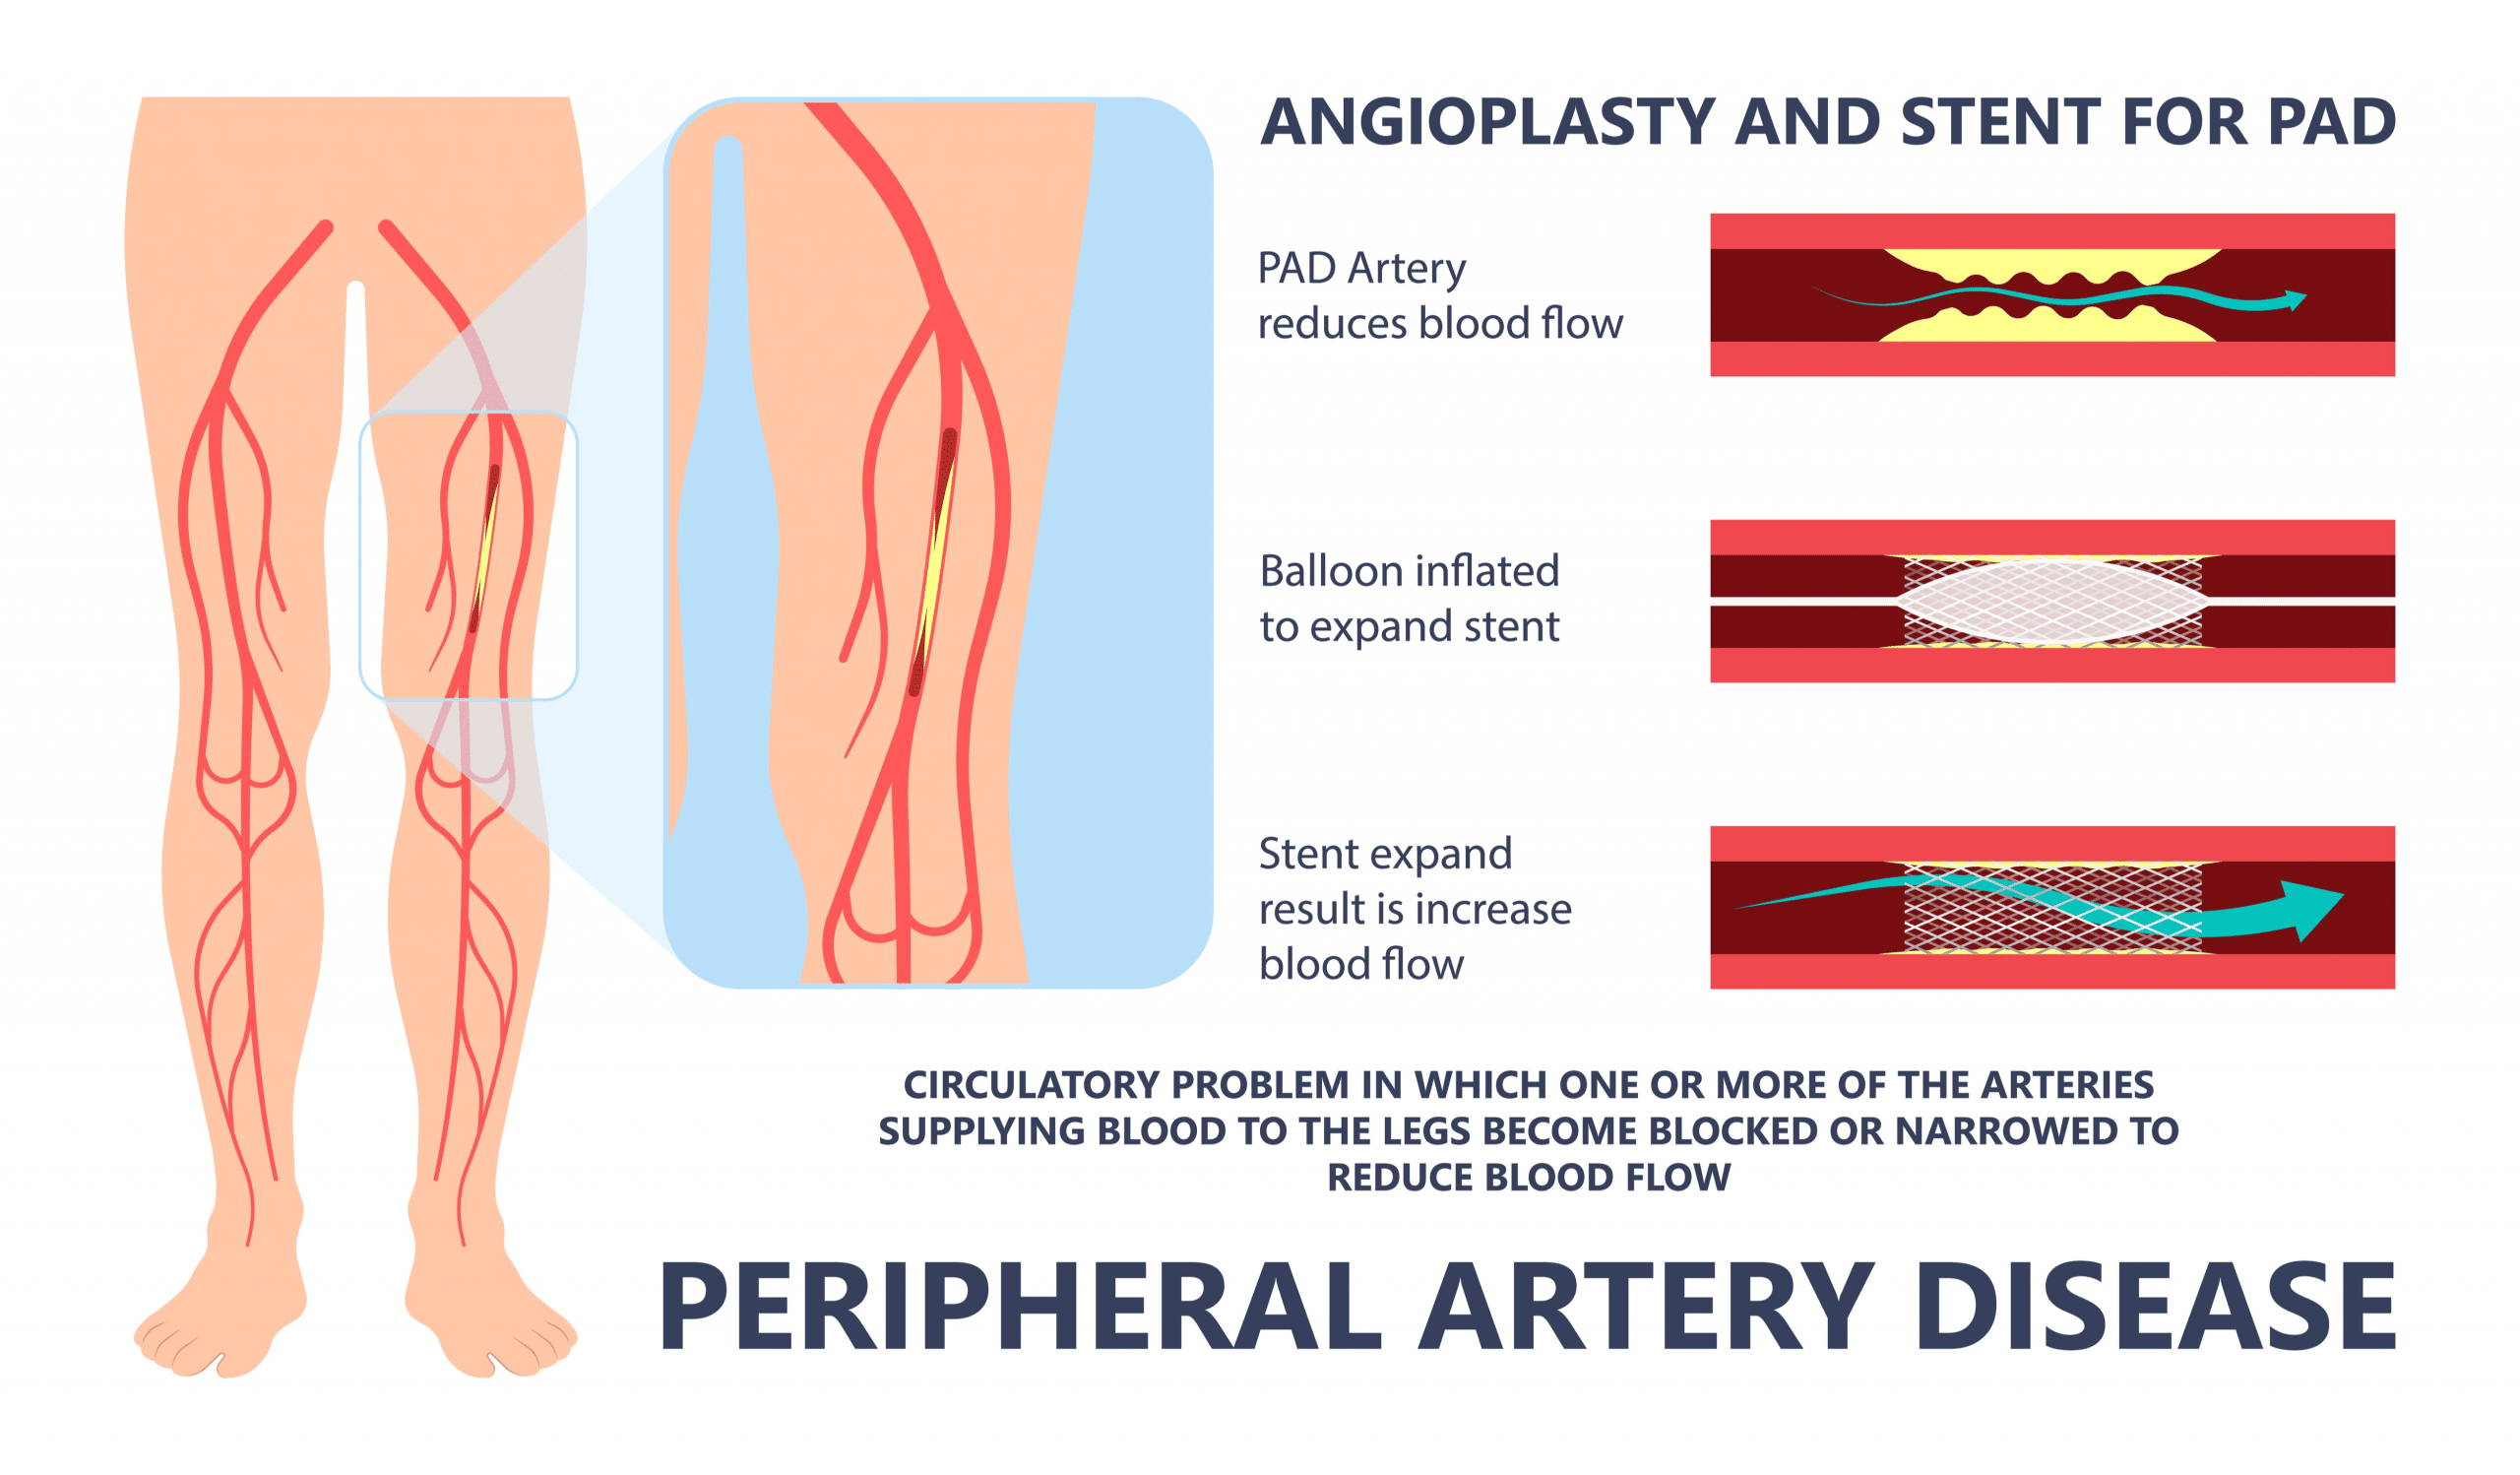 PAD angioplasty and stenting at Jordan Vascular Clinic